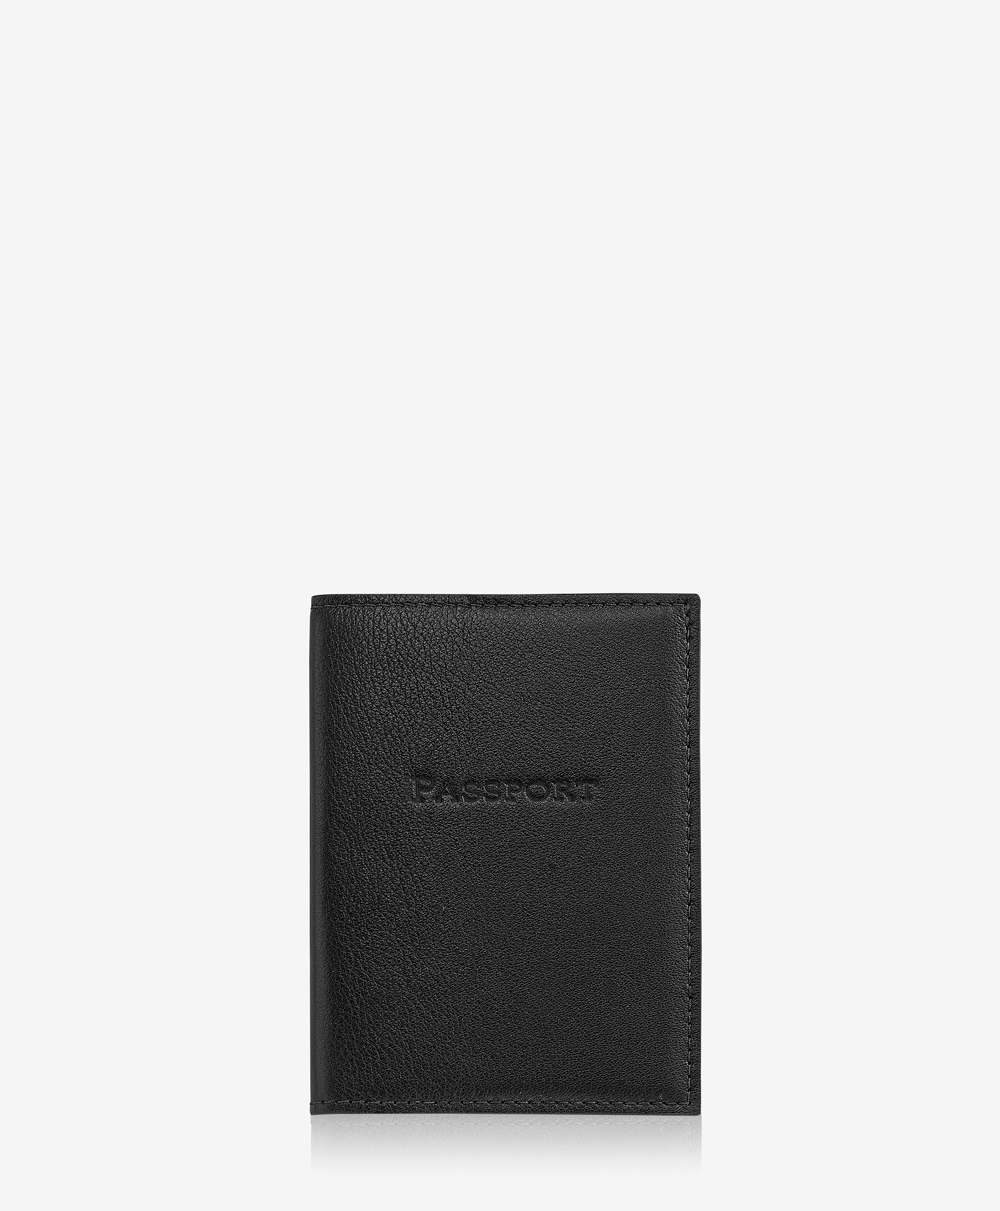 Passport Case Black Traditional Leather